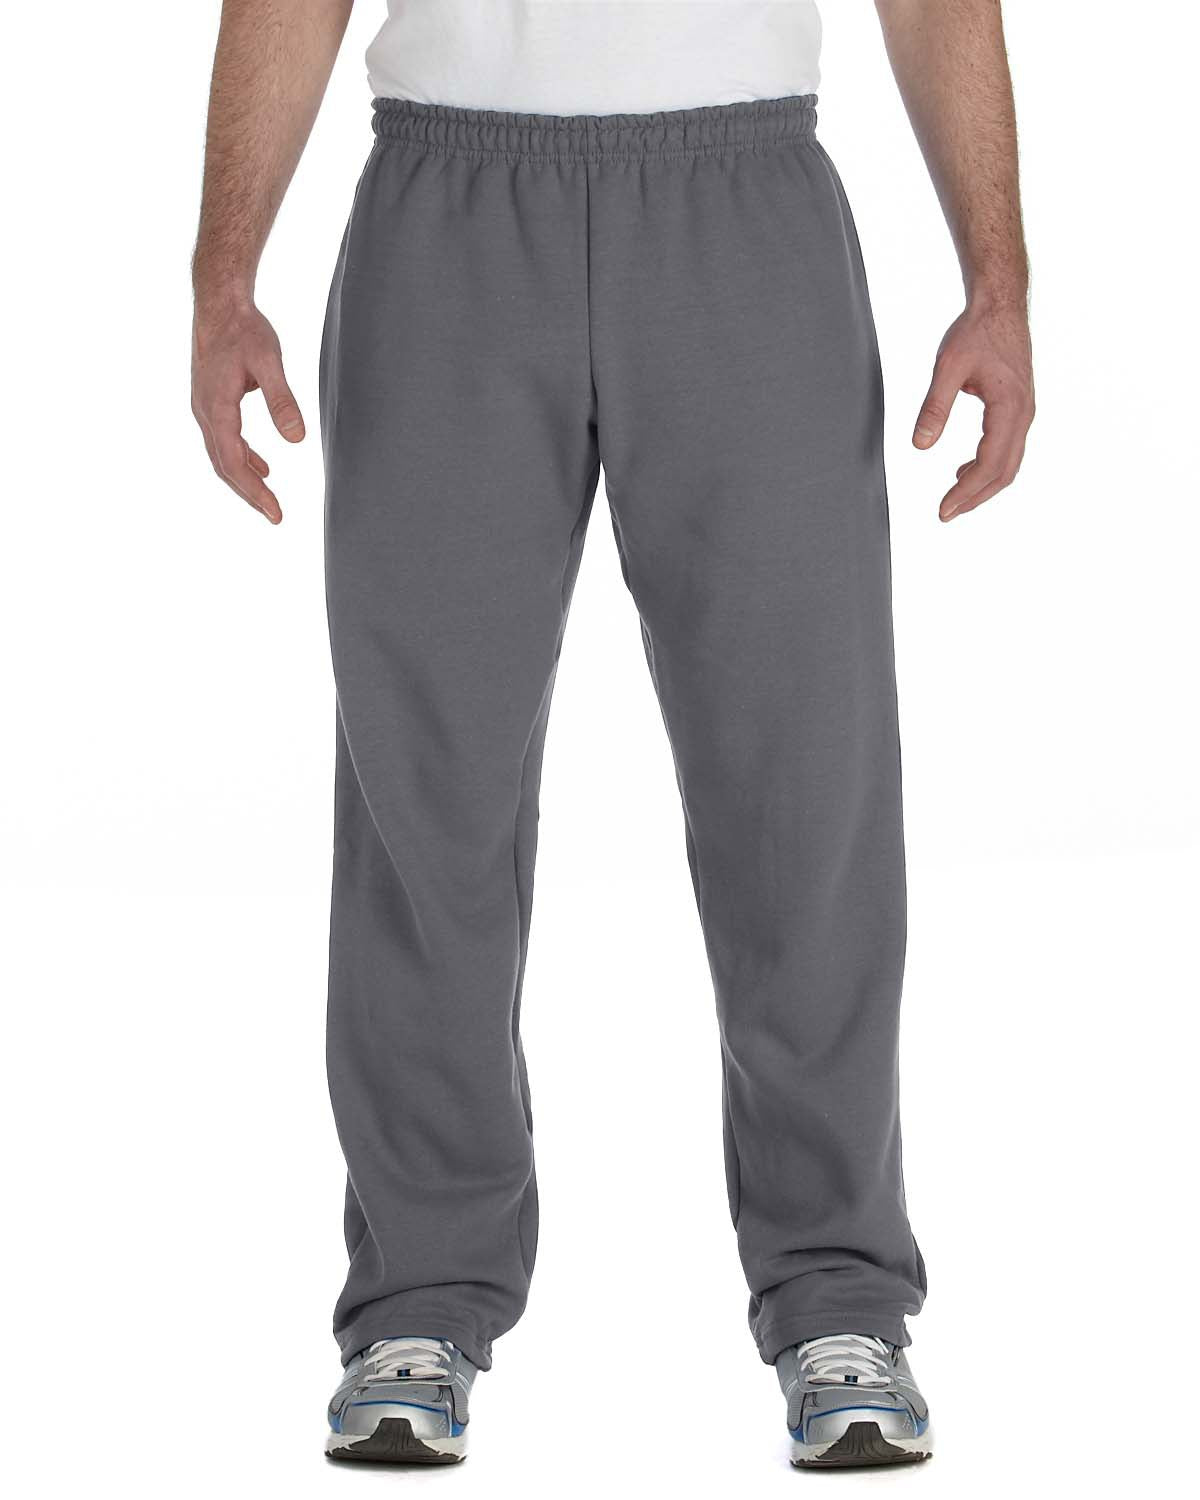 Gildan 50/50 Sweatpants Open-Bottom